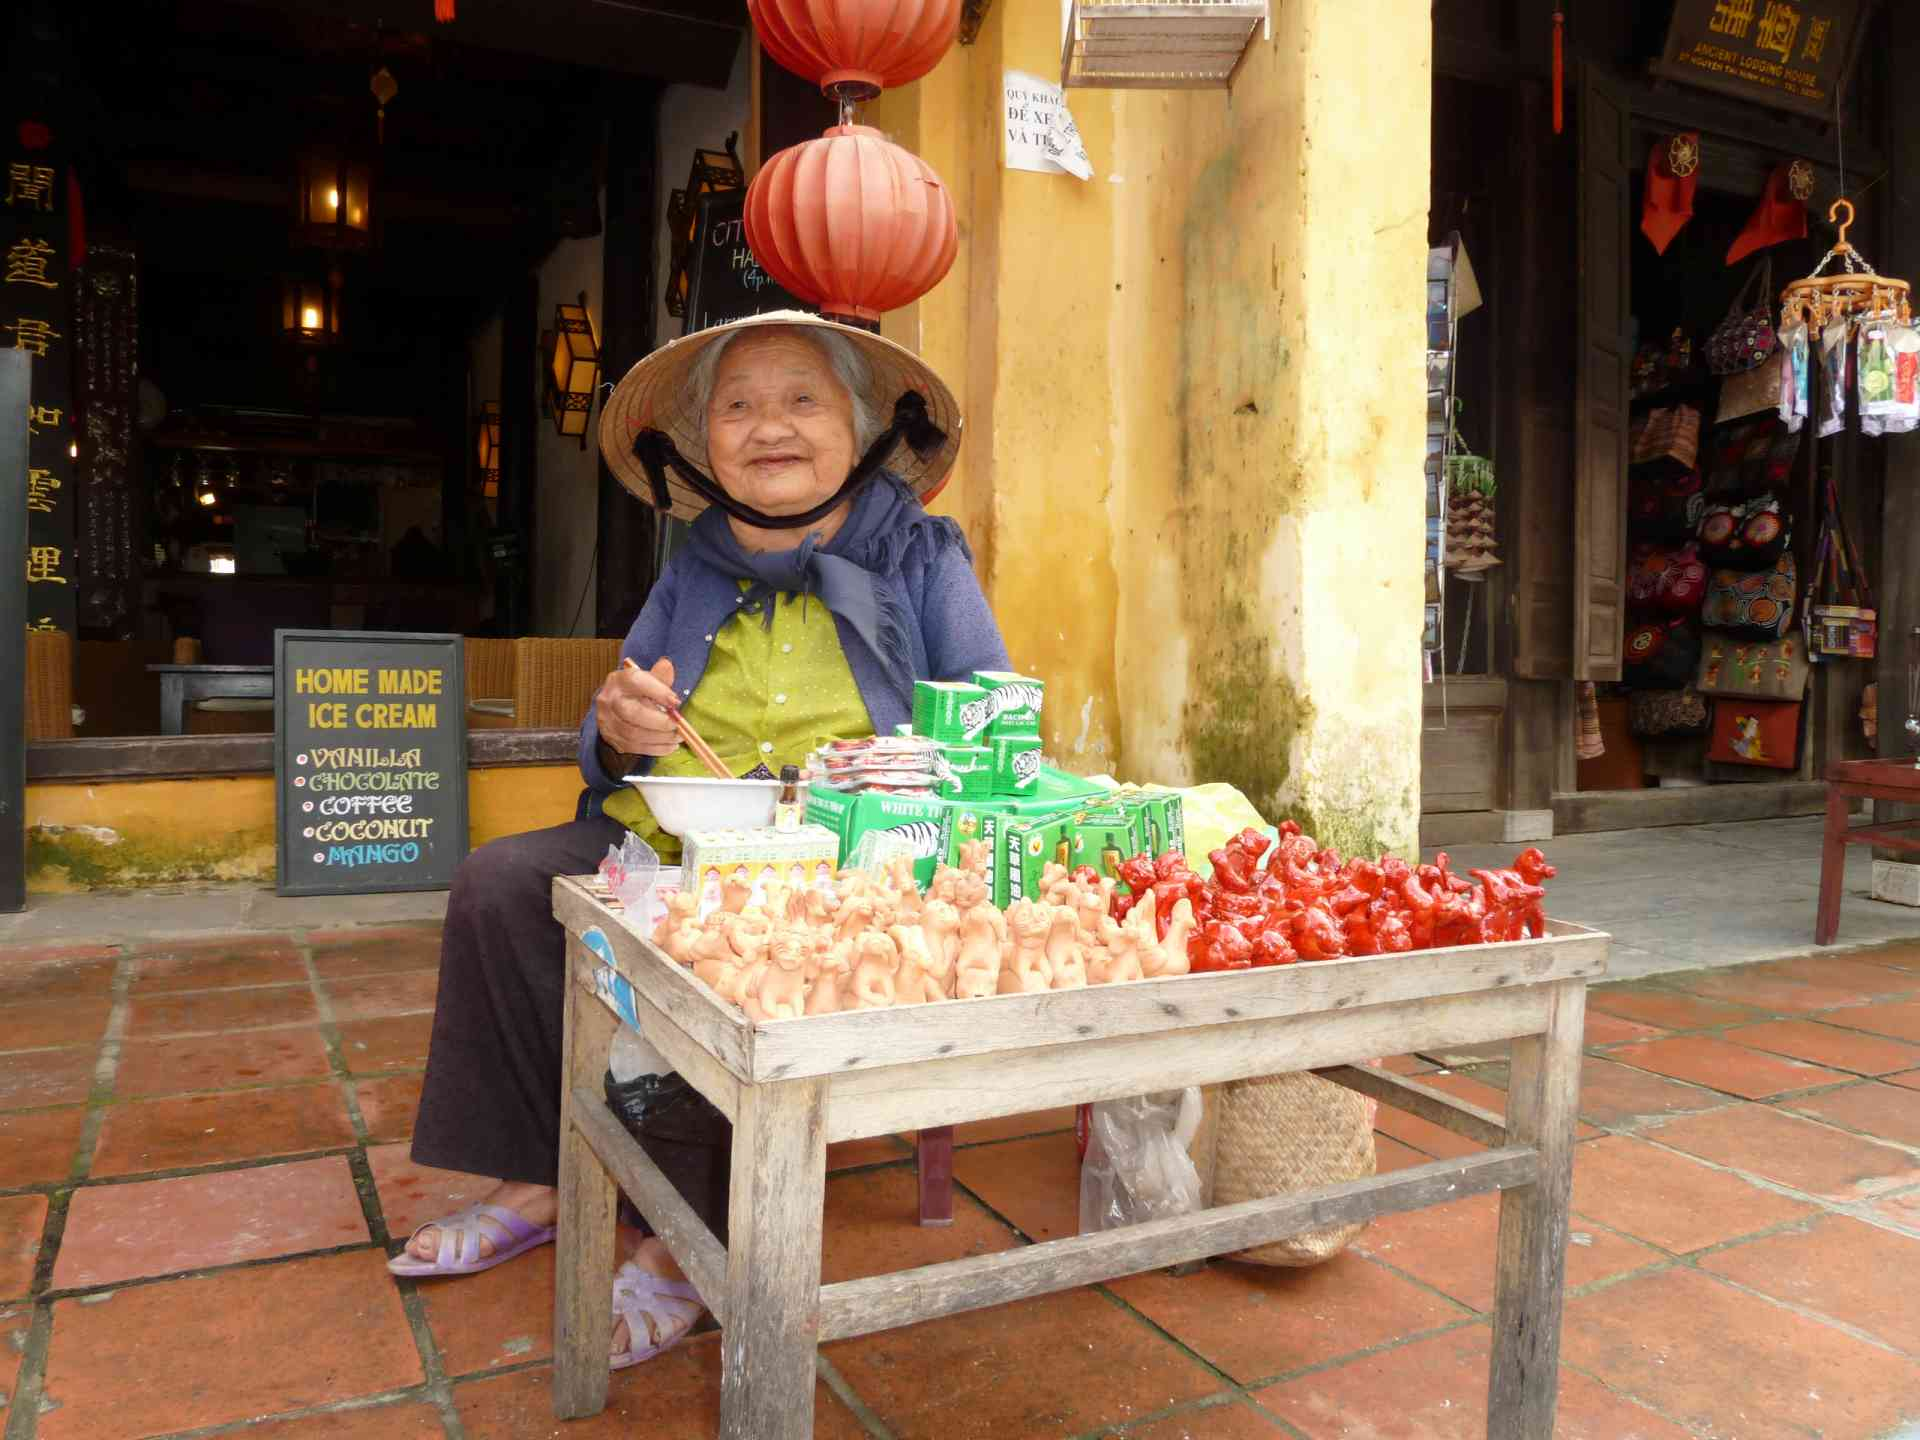 Local seller in Hanoi, Vietnam by Dennis Bunnik